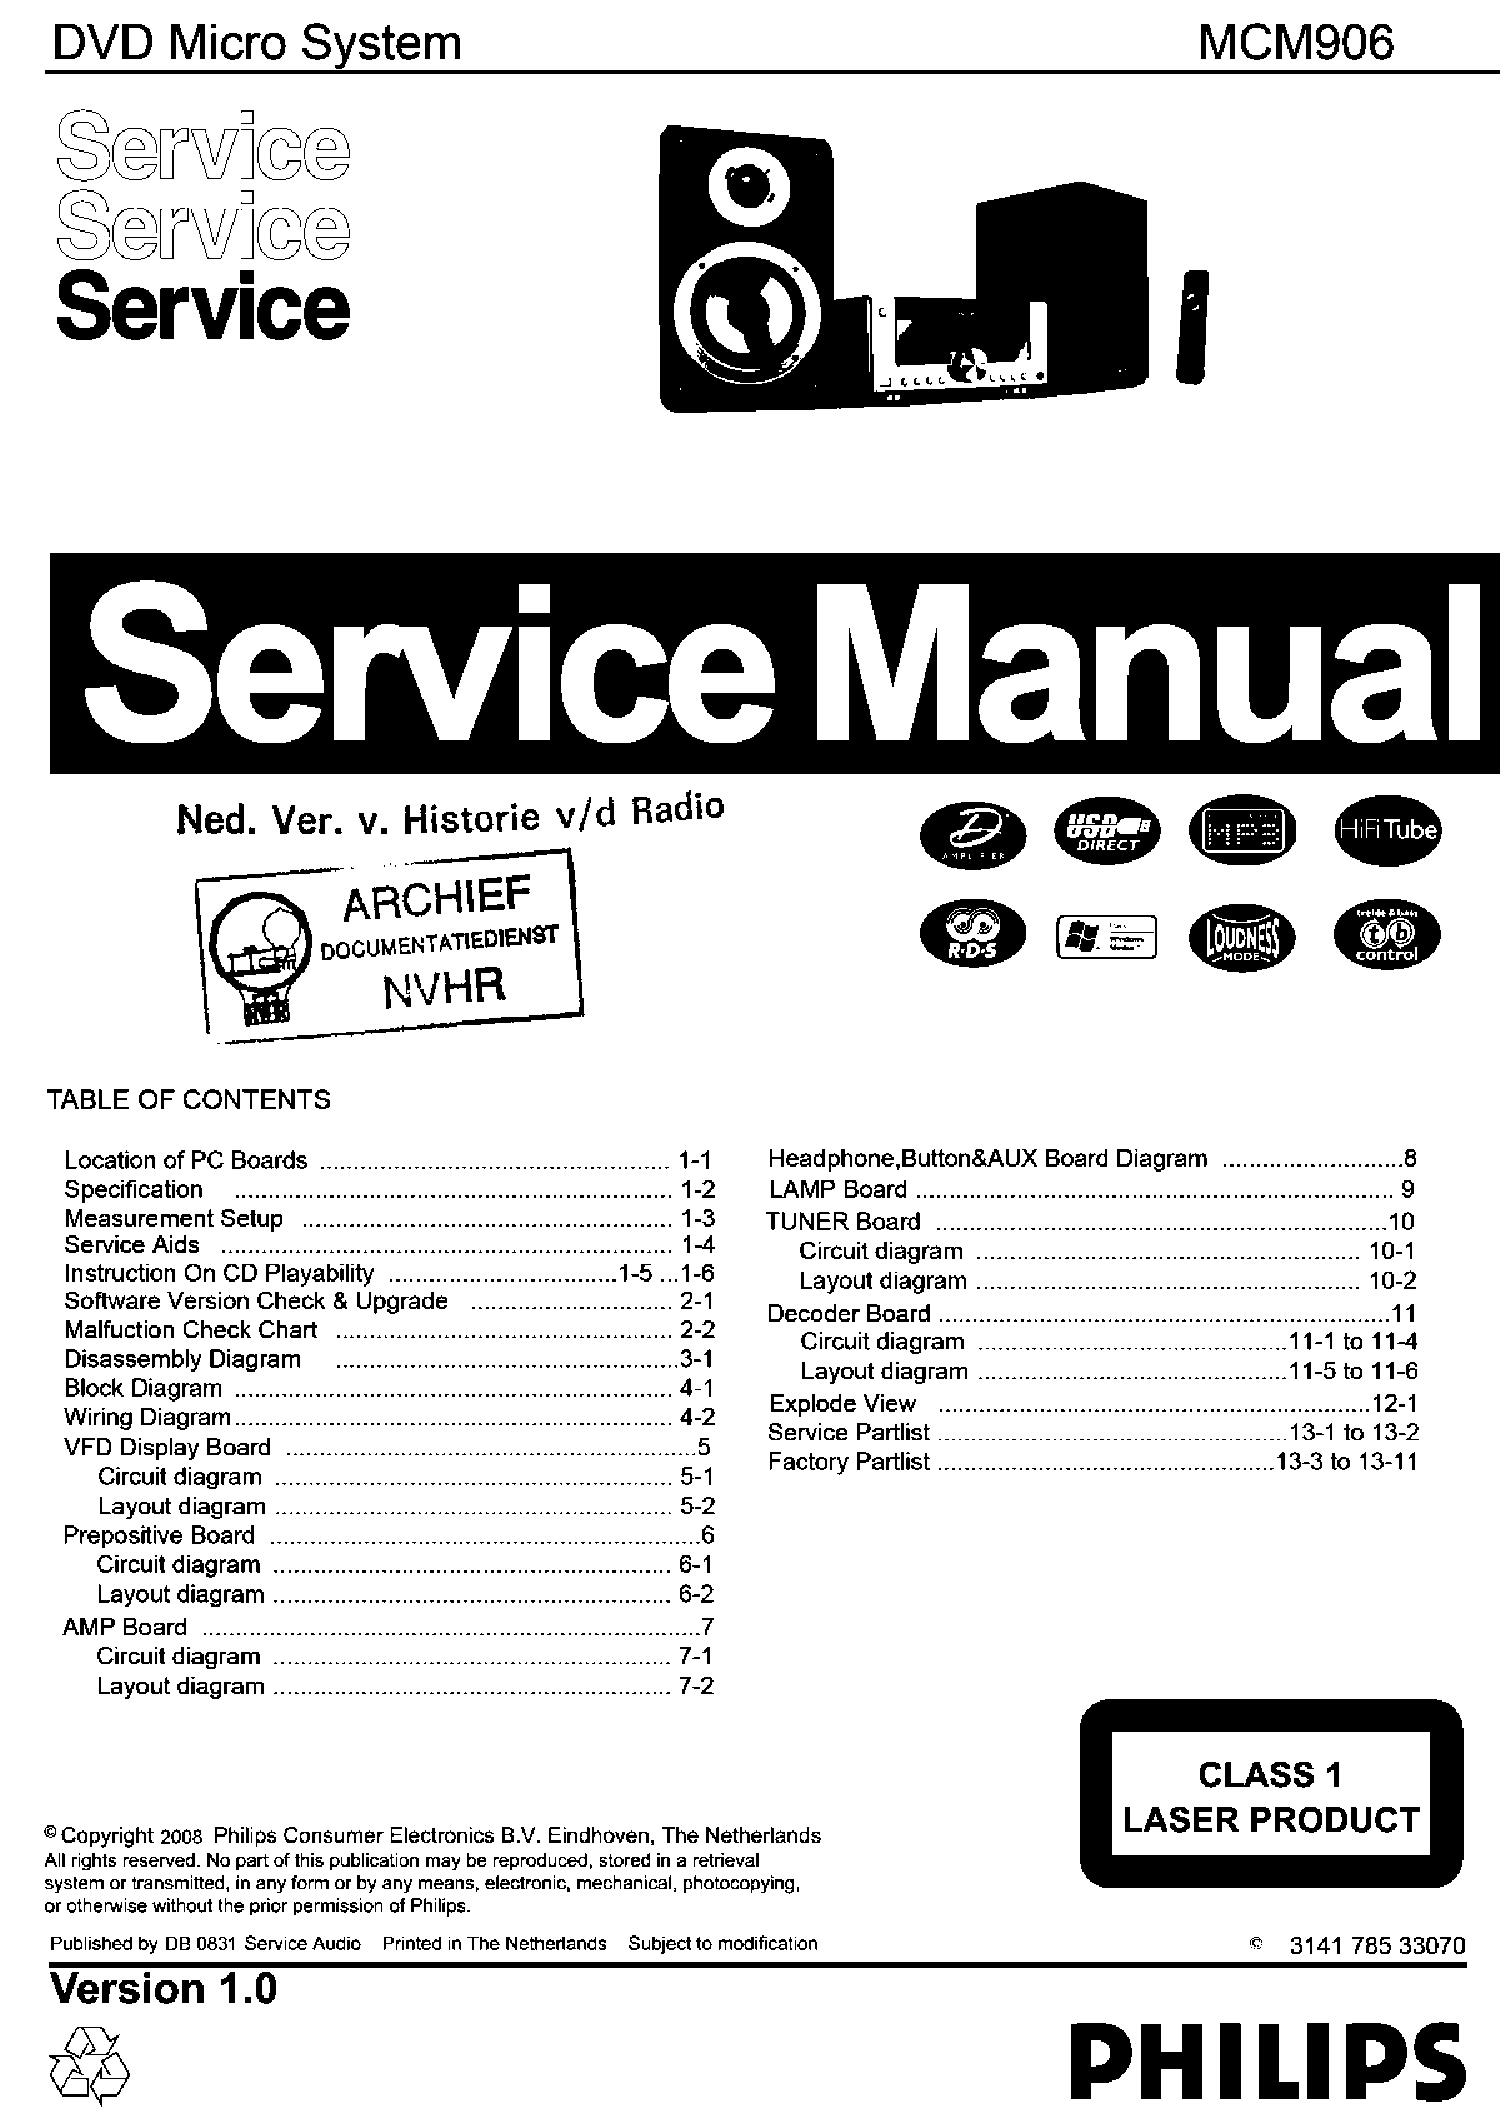 PHILIPS MCD122 SM Service Manual free download, schematics